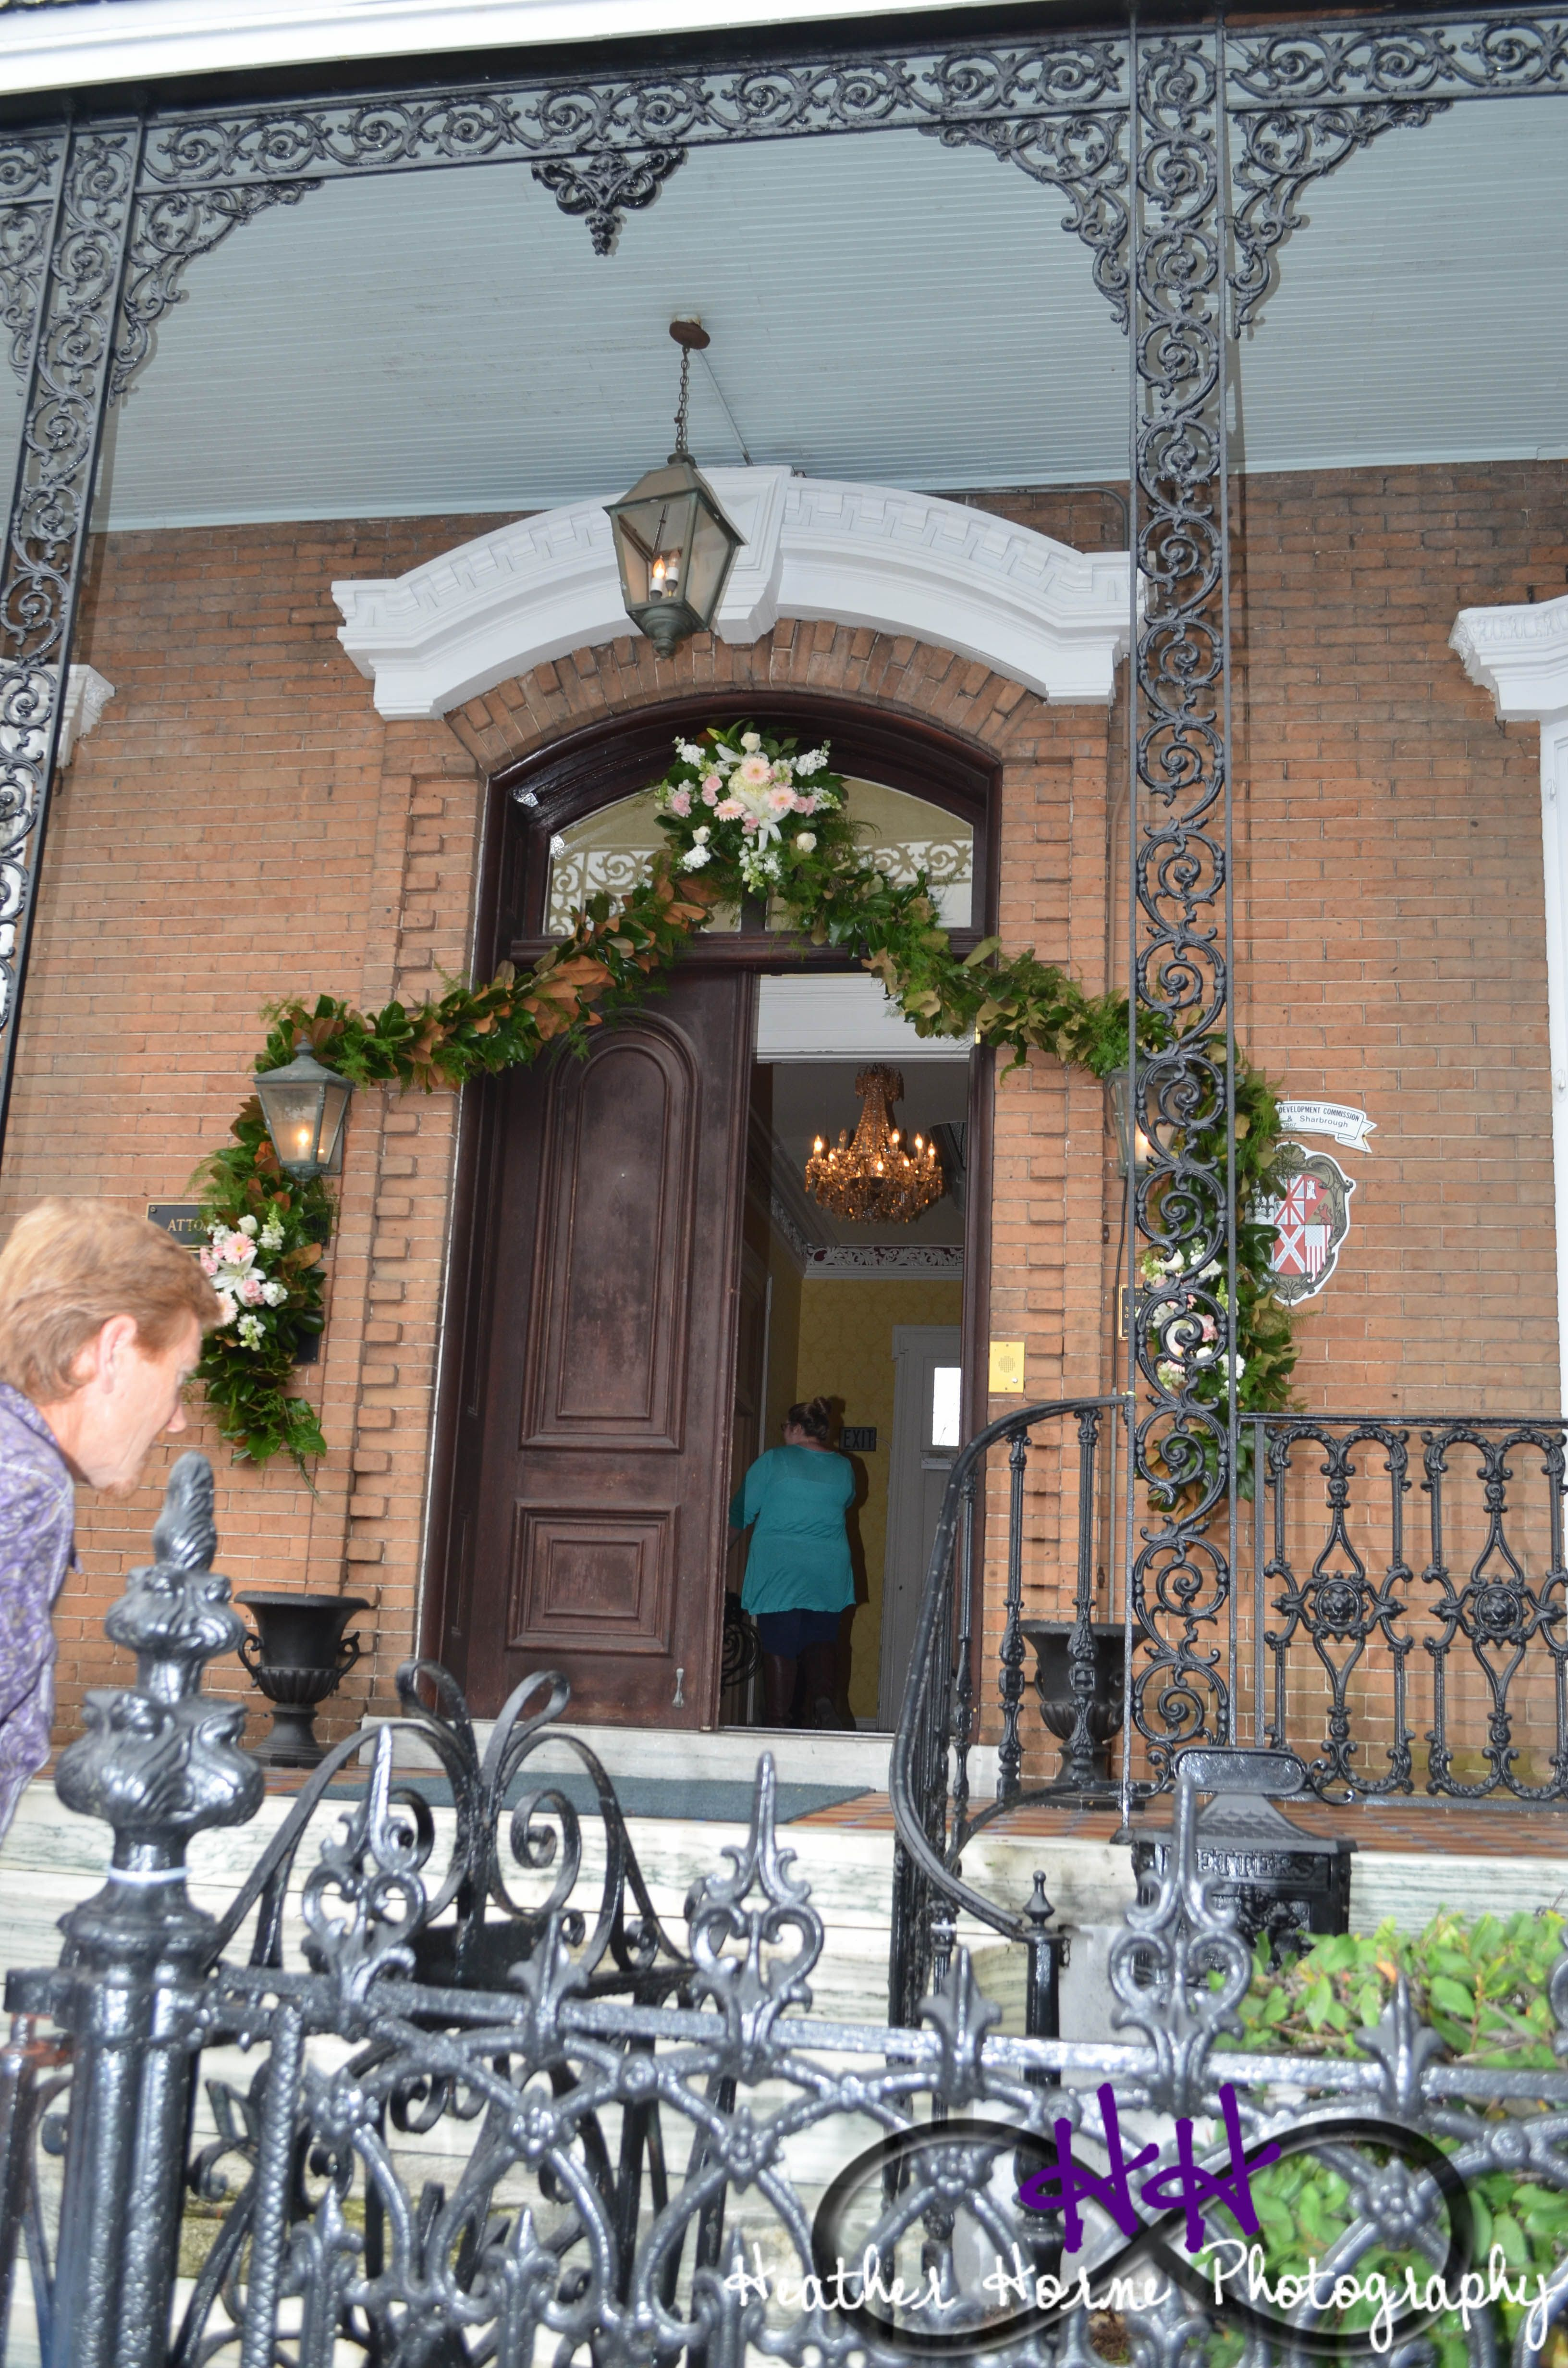 Bride Ride Bridal Show March 16, 2014 www.1elegantevent.com The Ezell House the 3rd stop on the Bride Ride Tour